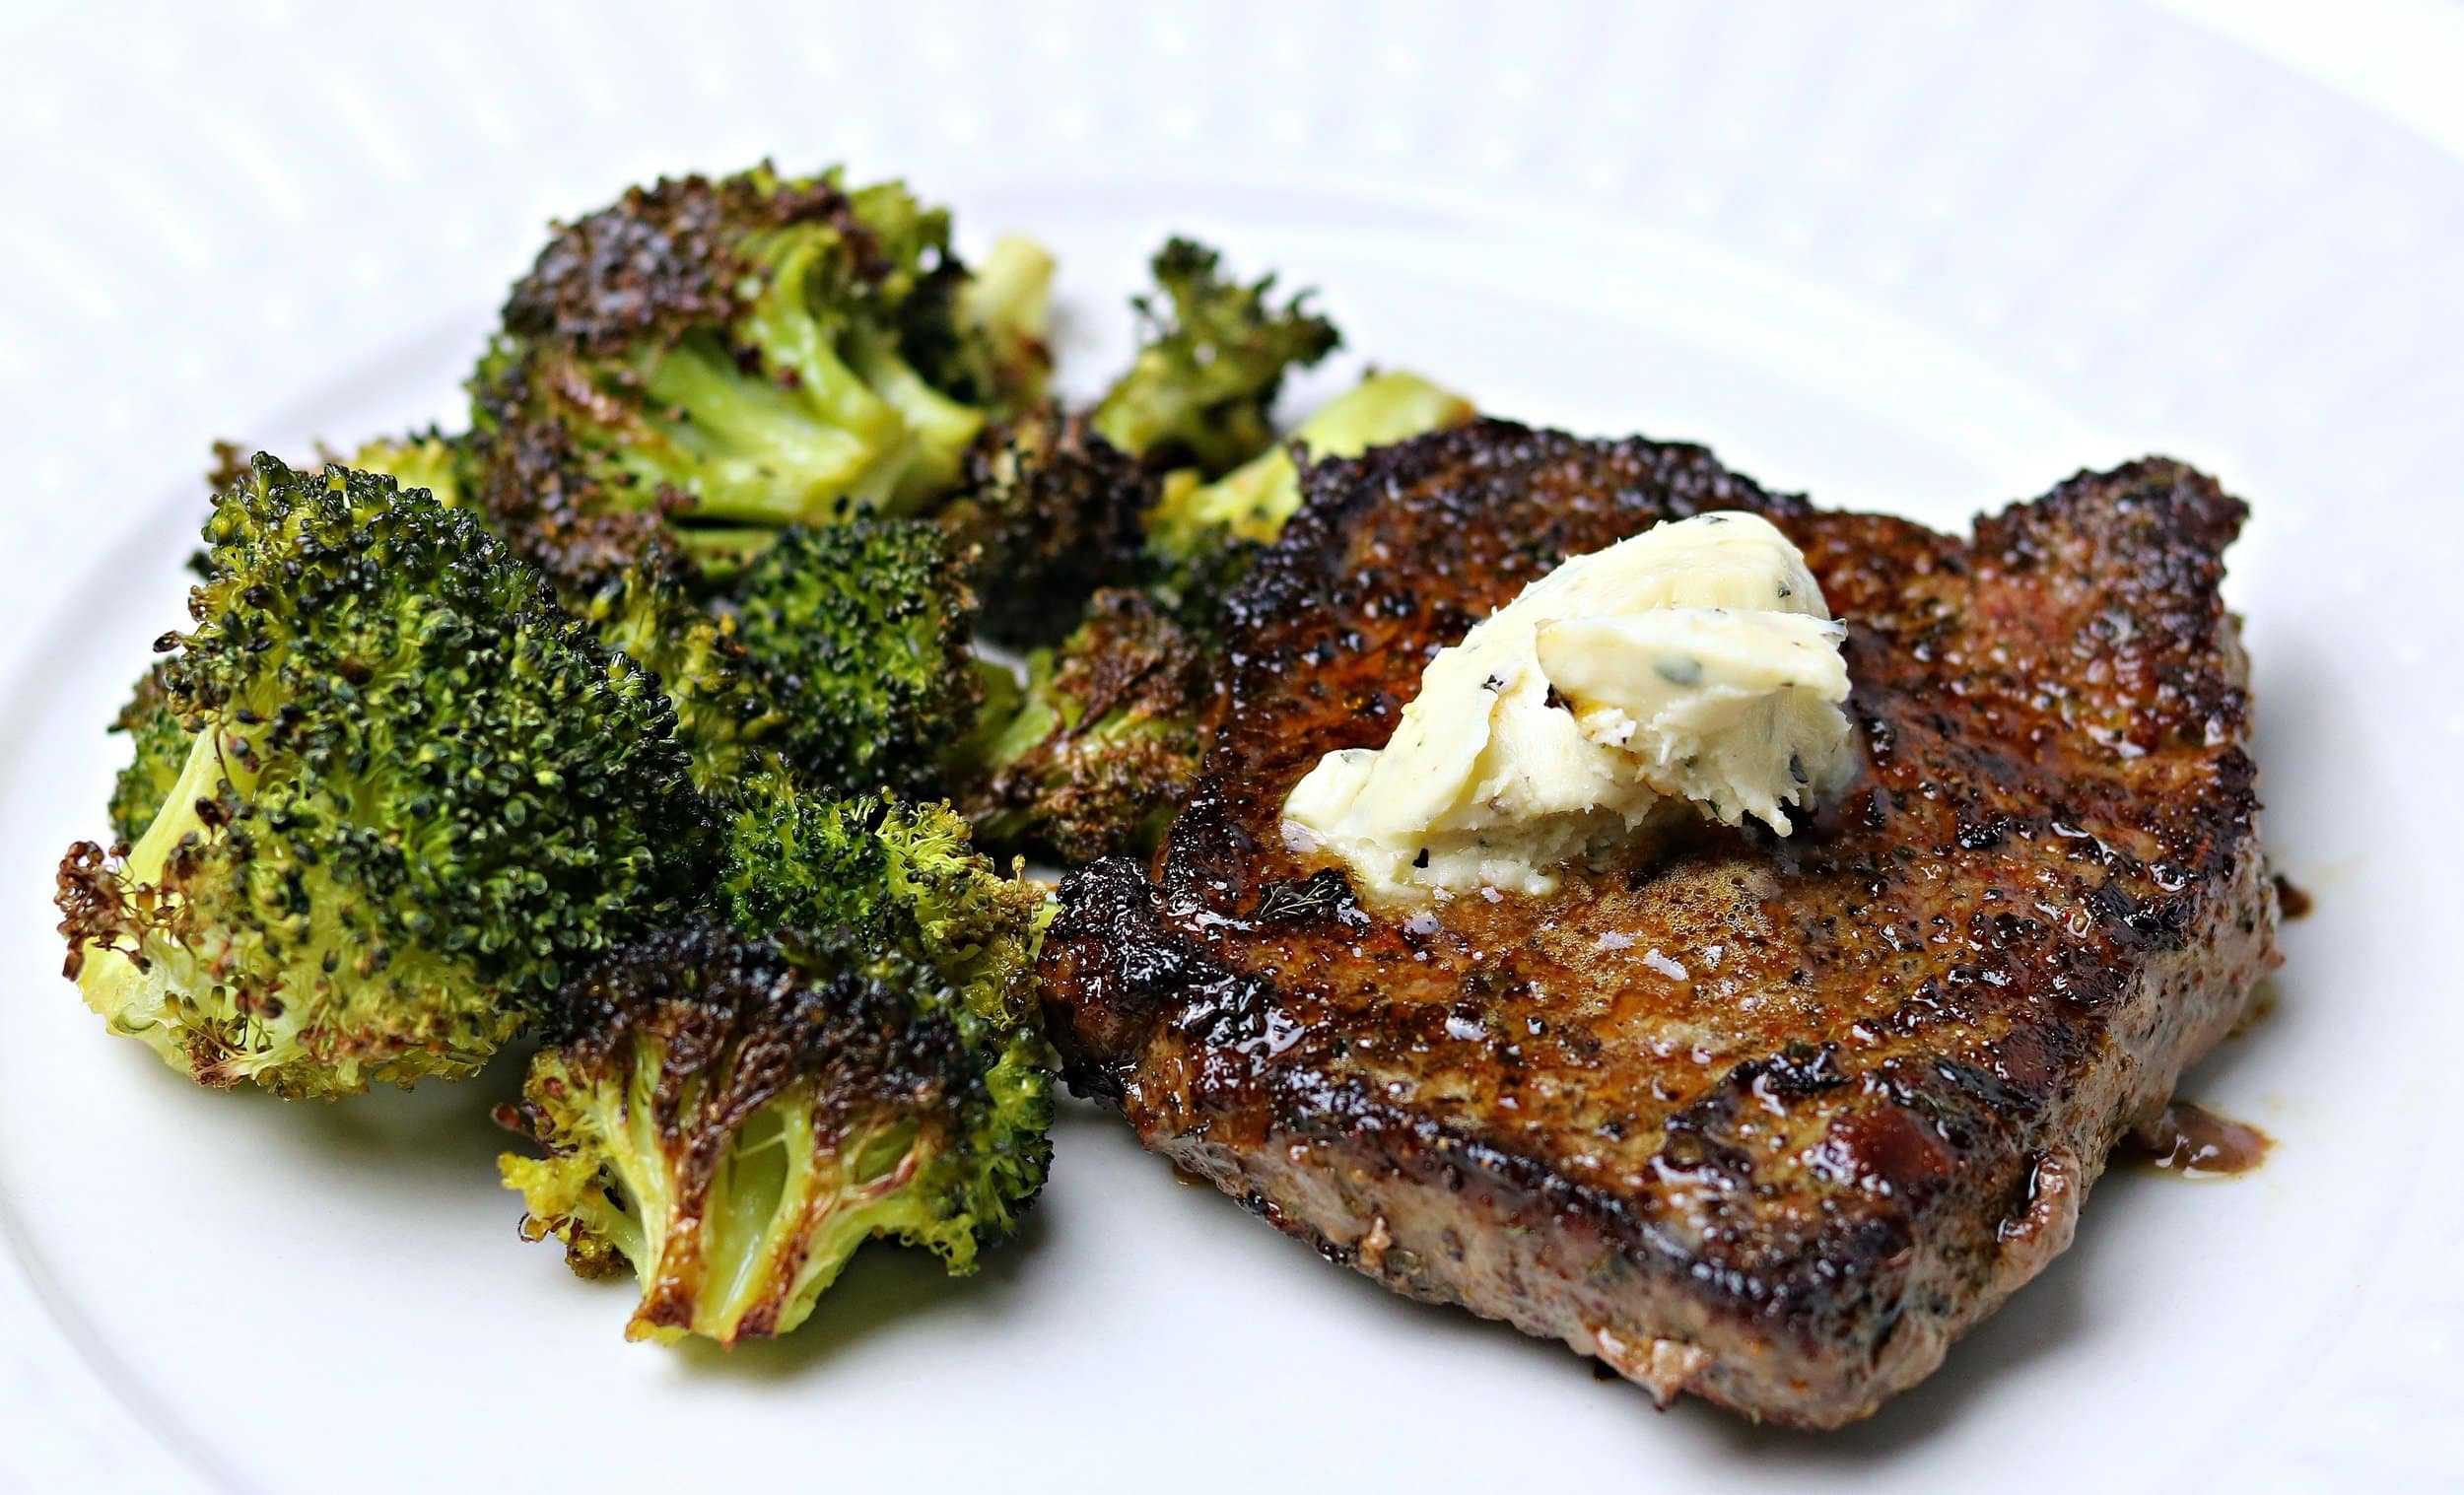 The final product of this beef top sirloin recipe - beef sirloin steak on a plate with roasted broccoli and compound butter.